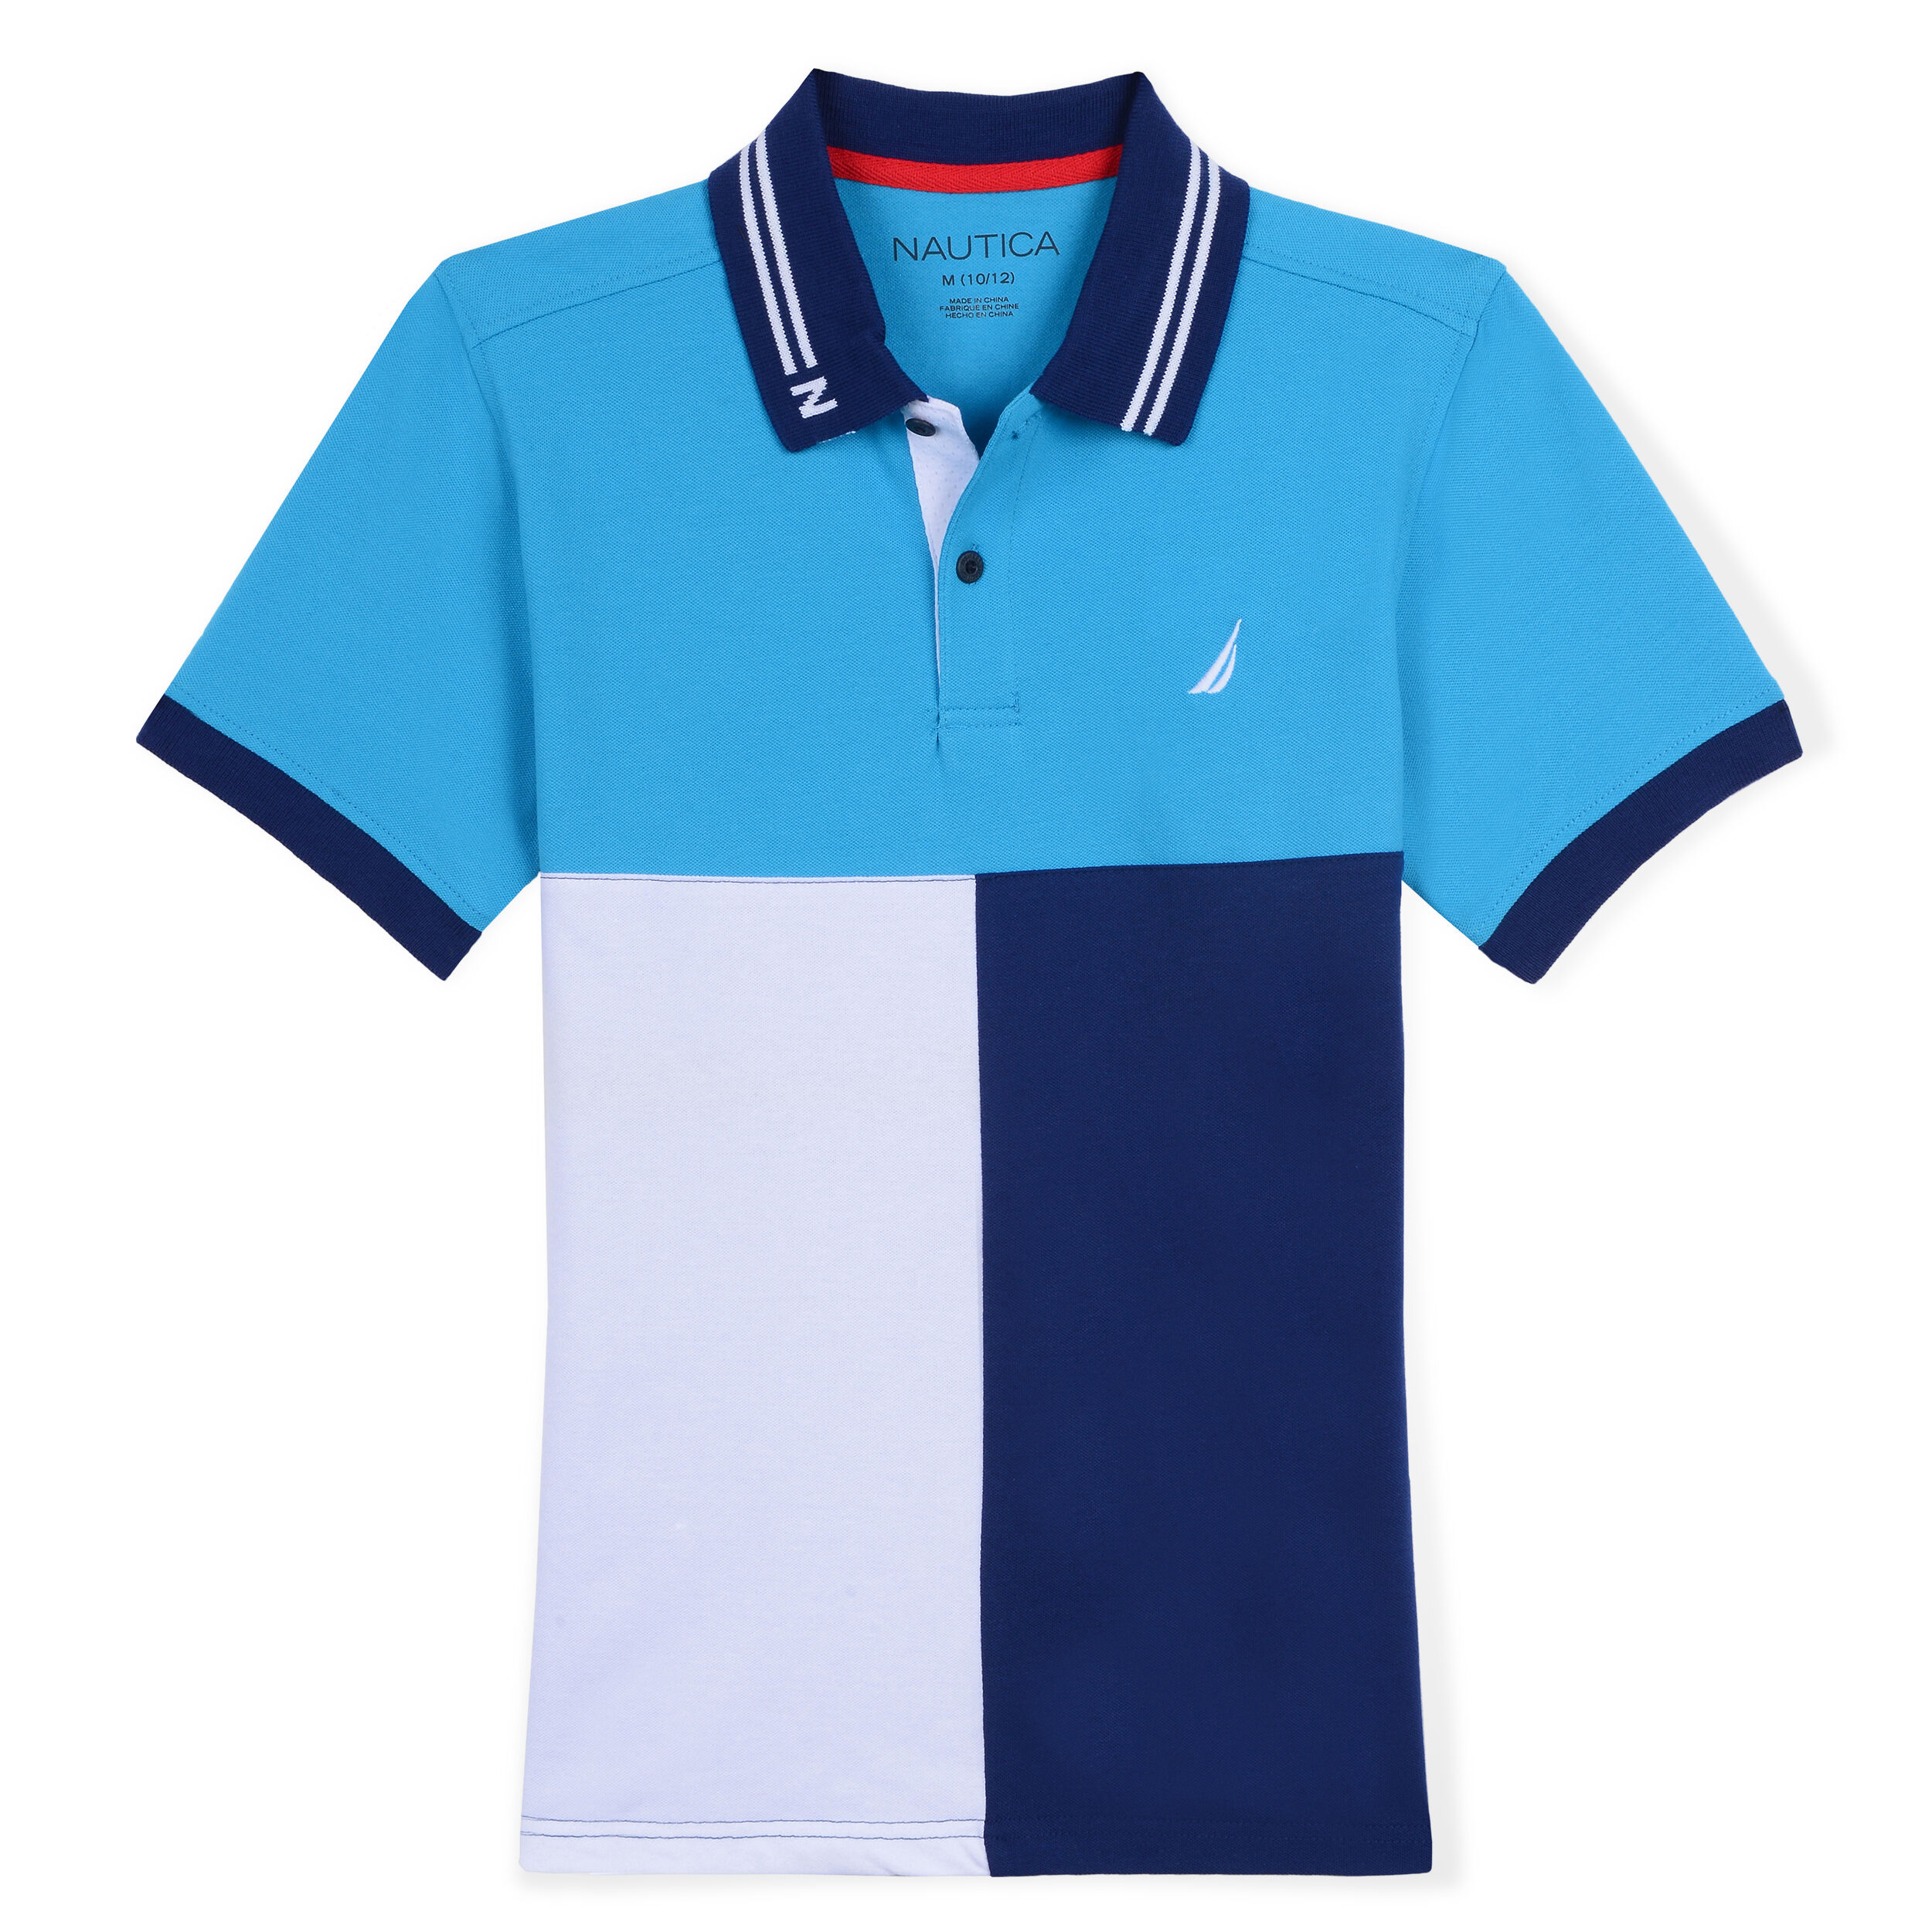 Nautica Toddler Boys/' Stretch Deck Polo 2T-4T